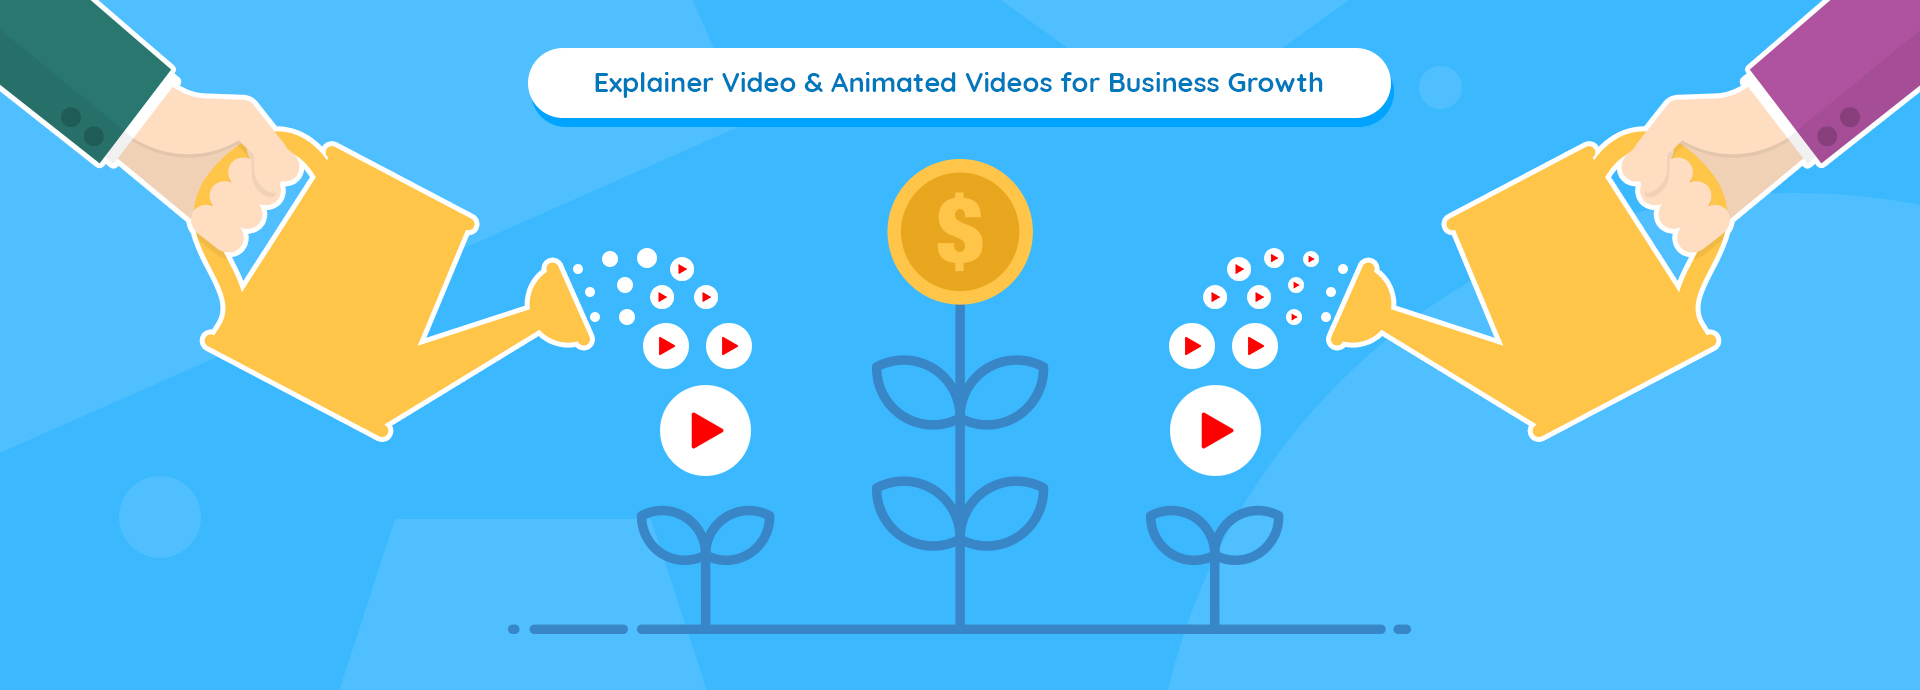 Explainer Video and Animated Videos for Business Growth